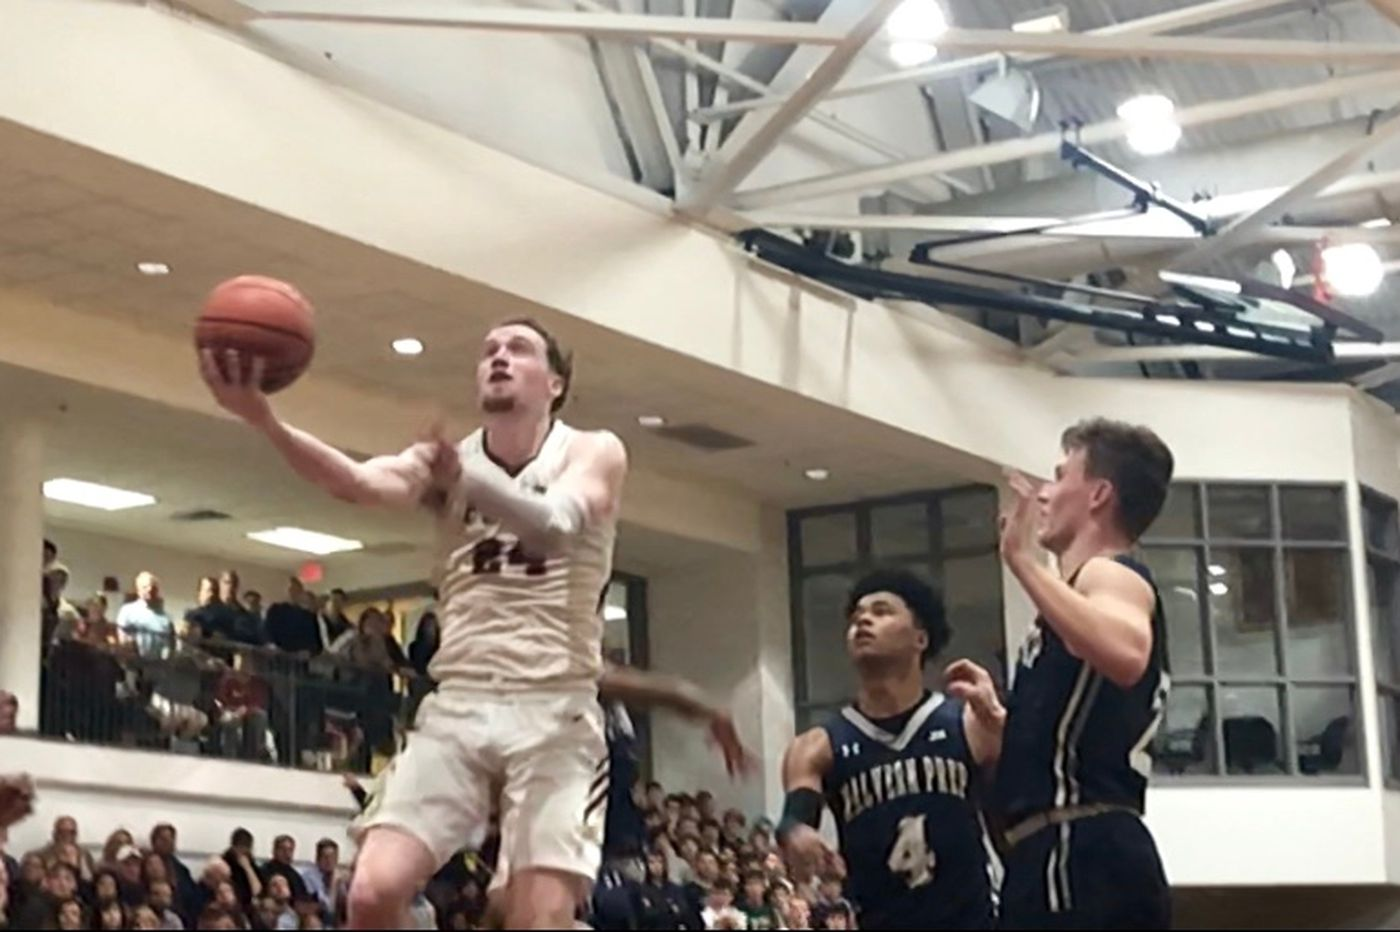 Unbeaten Haverford School trips Malvern Prep in OT to take over first place in the Inter-Ac League